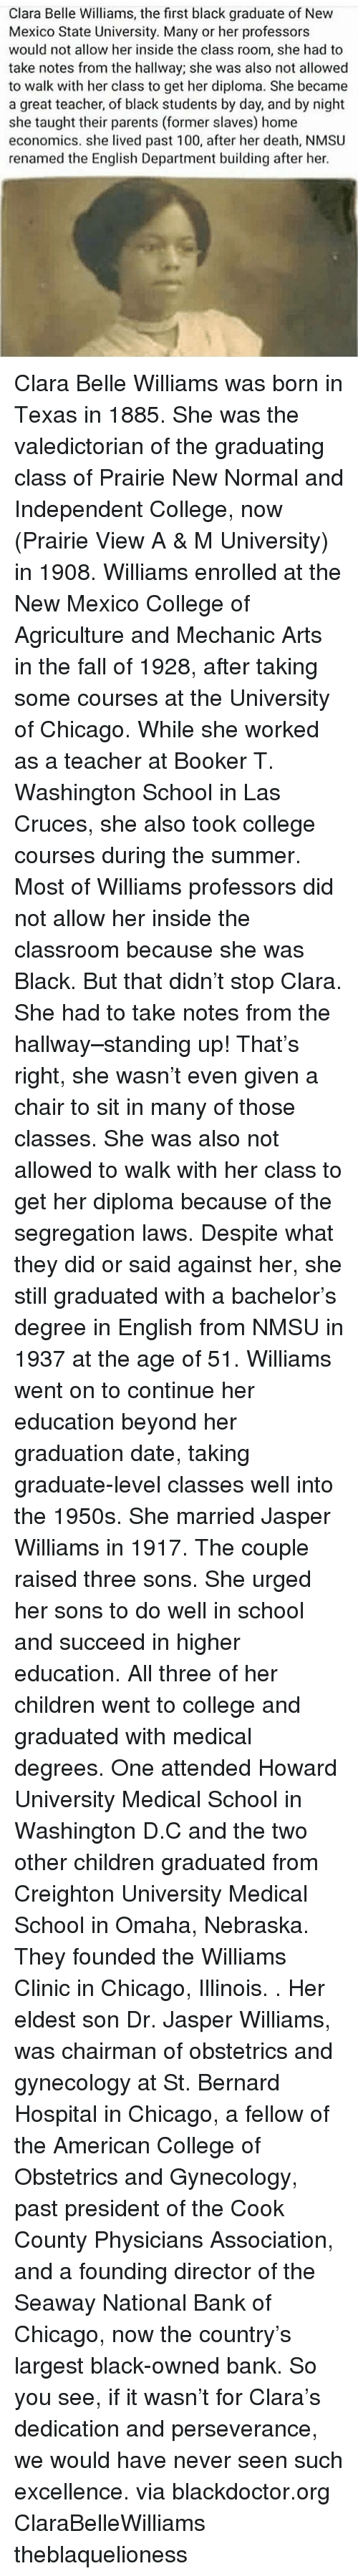 Bernard: Clara Belle Williams, the first black graduate of New  Mexico State University. Many or her professors  would not allow her inside the class room, she had to  take notes from the hallway; she was also not allowed  to walk with her class to get her diploma. She became  a great teacher, of black students by day, and by night  she taught their parents (former slaves) home  economics. she lived past 100, after her death, NMSU  renamed the English Department building after her. Clara Belle Williams was born in Texas in 1885. She was the valedictorian of the graduating class of Prairie New Normal and Independent College, now (Prairie View A & M University) in 1908. Williams enrolled at the New Mexico College of Agriculture and Mechanic Arts in the fall of 1928, after taking some courses at the University of Chicago. While she worked as a teacher at Booker T. Washington School in Las Cruces, she also took college courses during the summer. Most of Williams professors did not allow her inside the classroom because she was Black. But that didn't stop Clara. She had to take notes from the hallway–standing up! That's right, she wasn't even given a chair to sit in many of those classes. She was also not allowed to walk with her class to get her diploma because of the segregation laws. Despite what they did or said against her, she still graduated with a bachelor's degree in English from NMSU in 1937 at the age of 51. Williams went on to continue her education beyond her graduation date, taking graduate-level classes well into the 1950s. She married Jasper Williams in 1917. The couple raised three sons. She urged her sons to do well in school and succeed in higher education. All three of her children went to college and graduated with medical degrees. One attended Howard University Medical School in Washington D.C and the two other children graduated from Creighton University Medical School in Omaha, Nebraska. They founded the Williams Clinic in Chicago, Illinois. . Her eldest son Dr. Jasper Williams, was chairman of obstetrics and gynecology at St. Bernard Hospital in Chicago, a fellow of the American College of Obstetrics and Gynecology, past president of the Cook County Physicians Association, and a founding director of the Seaway National Bank of Chicago, now the country's largest black-owned bank. So you see, if it wasn't for Clara's dedication and perseverance, we would have never seen such excellence. via blackdoctor.org ClaraBelleWilliams theblaquelioness